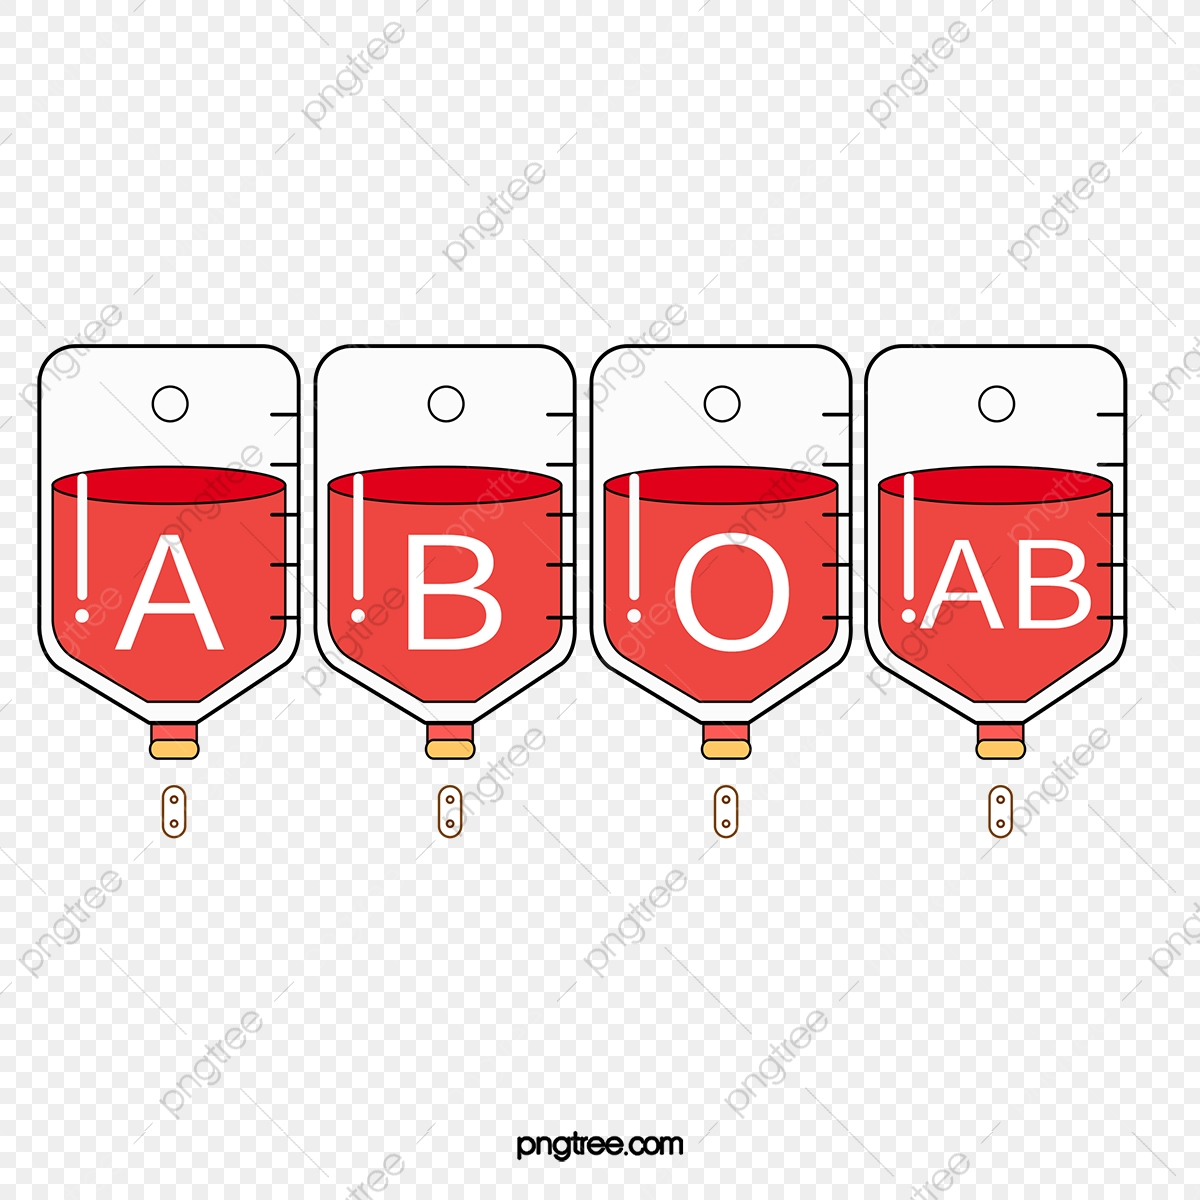 blood transfusion ppt free download